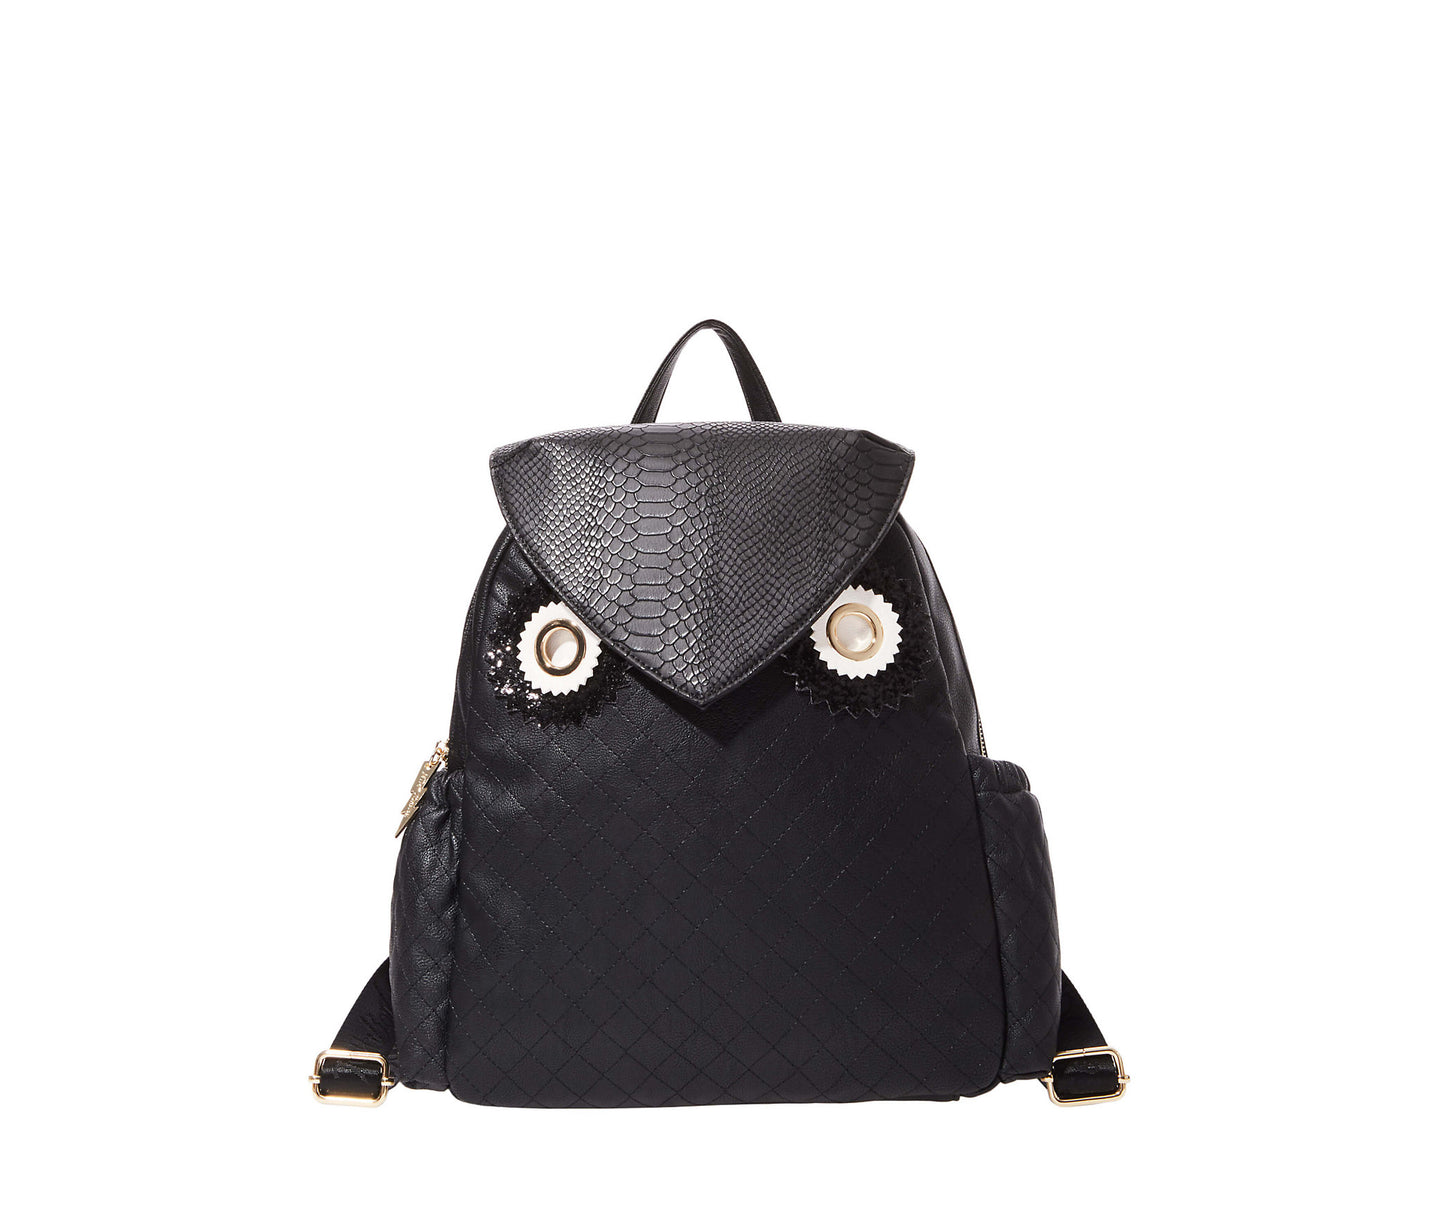 OWL ALWAYS LOVE YOU BACKPACK BLACK - HANDBAGS - Betsey Johnson